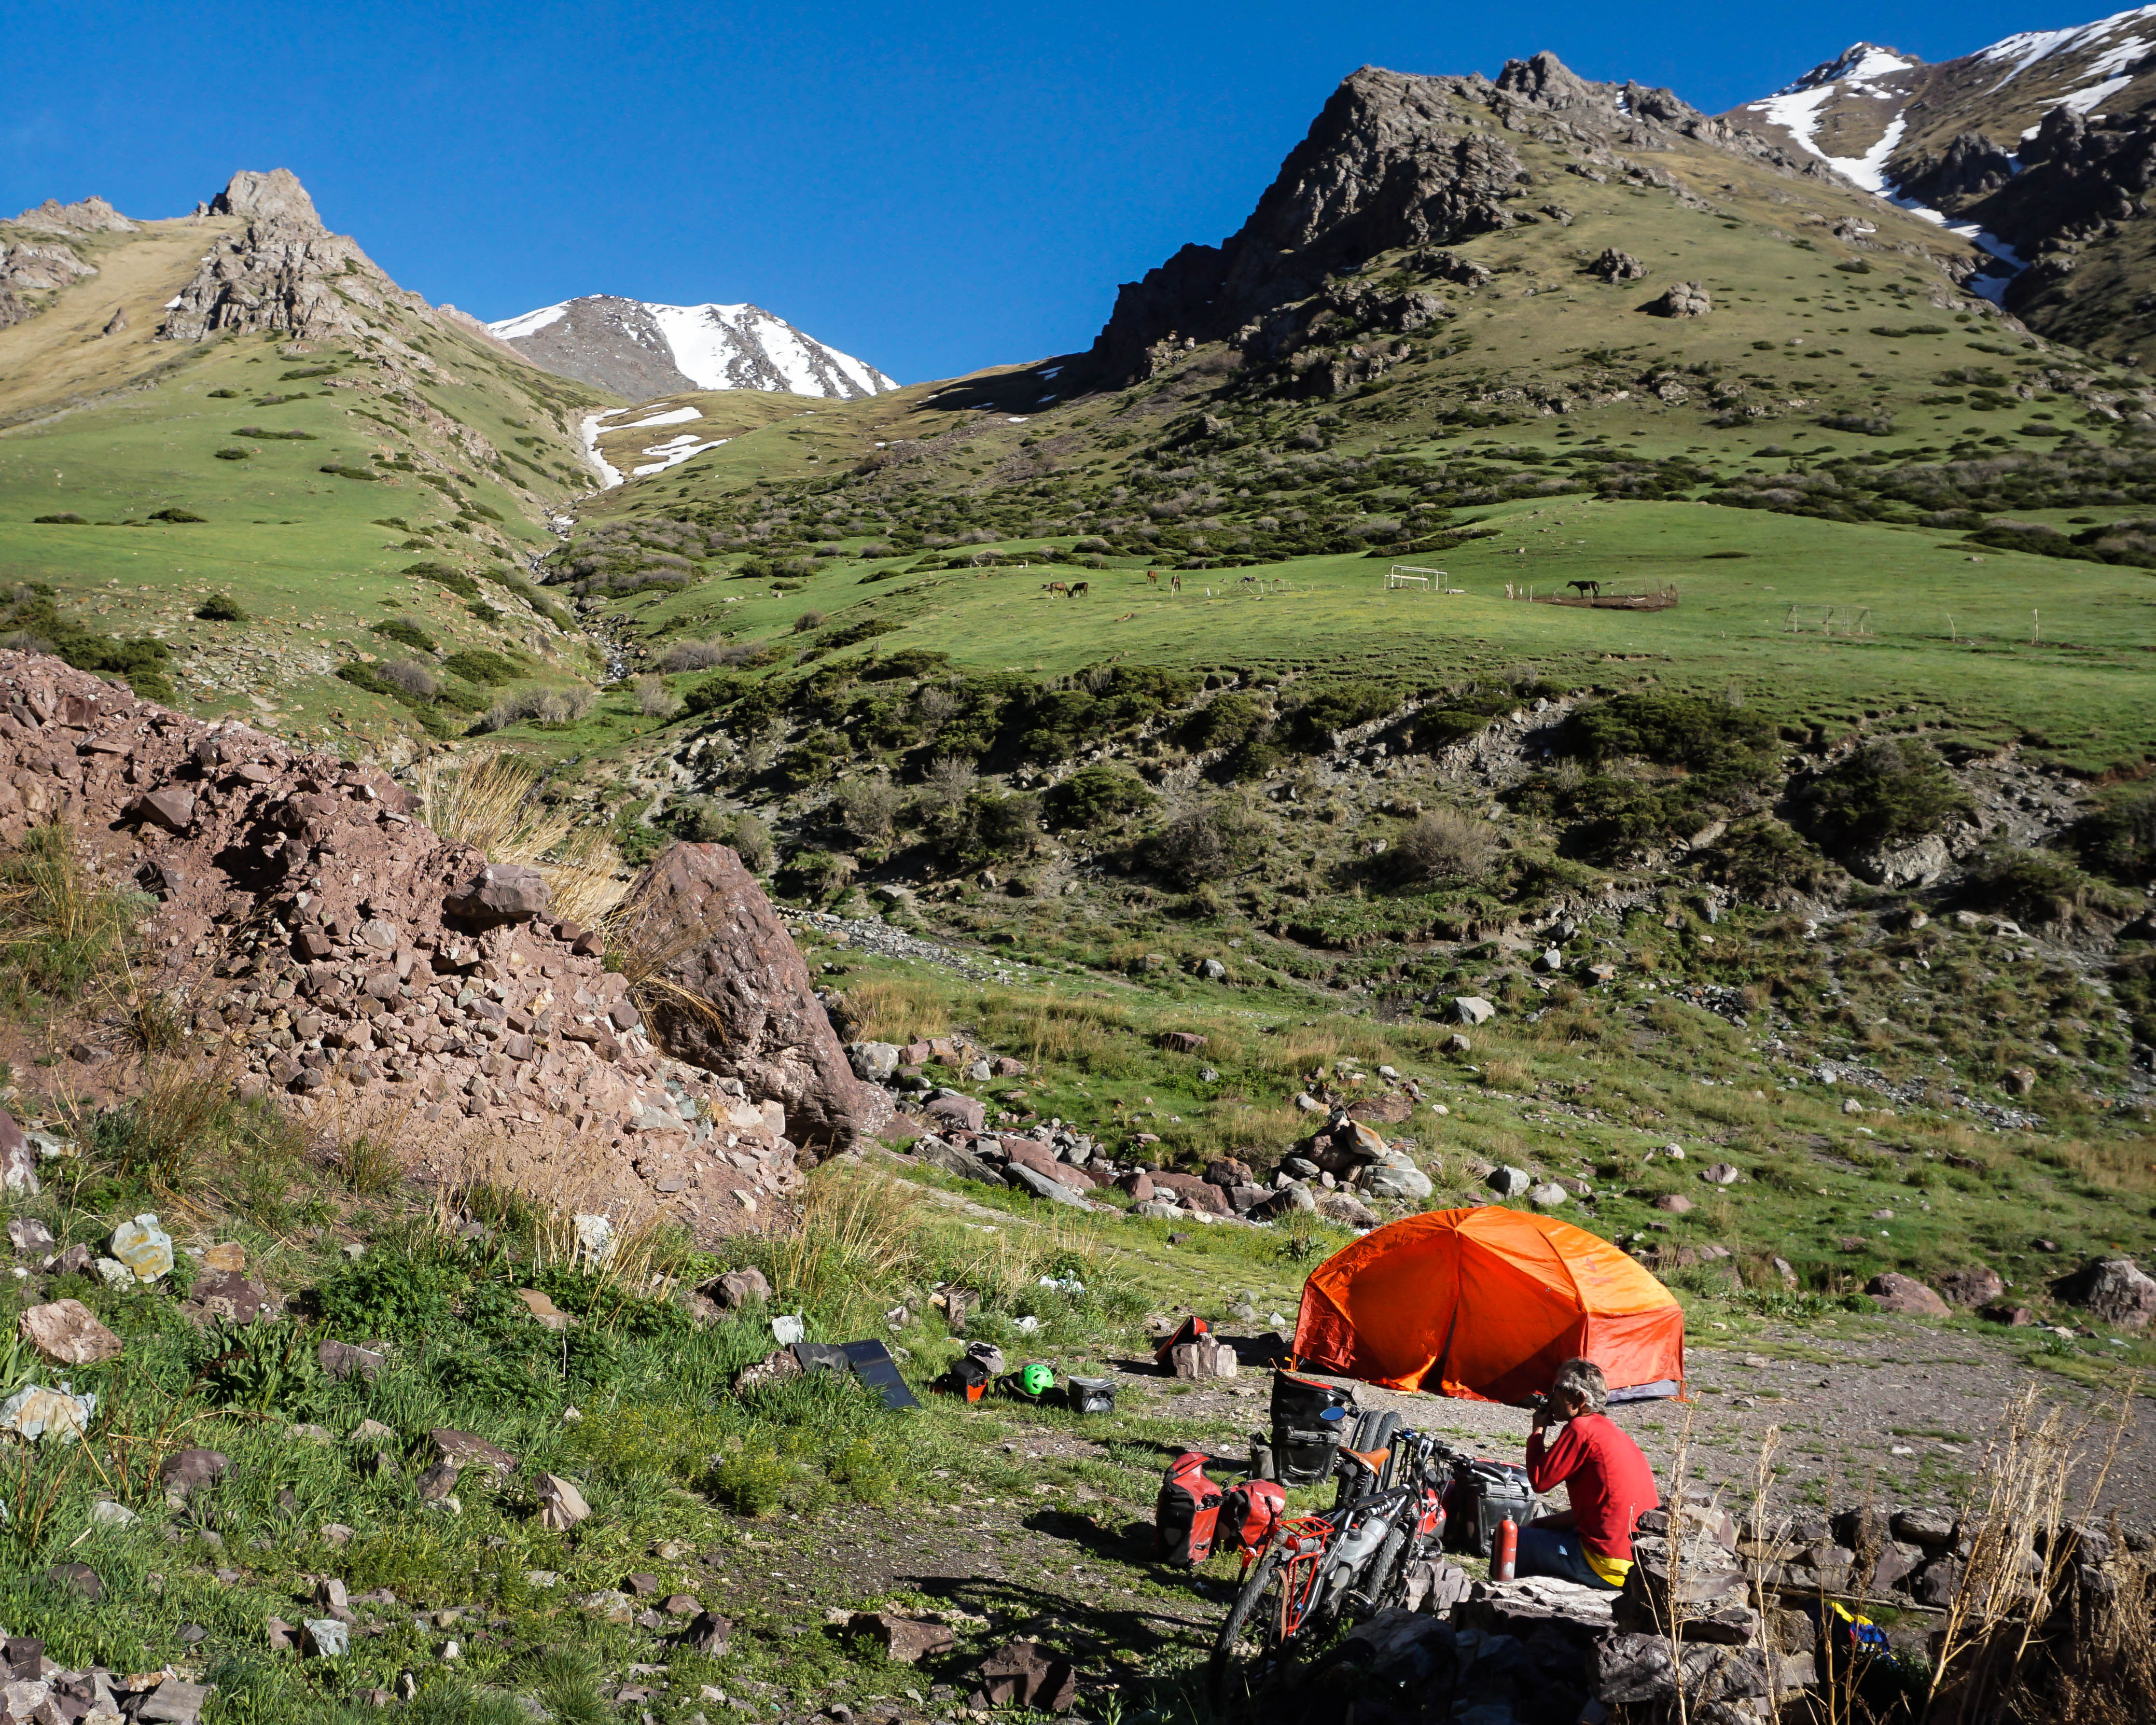 camping in the Pamir Mountains, Kyrgyzstan